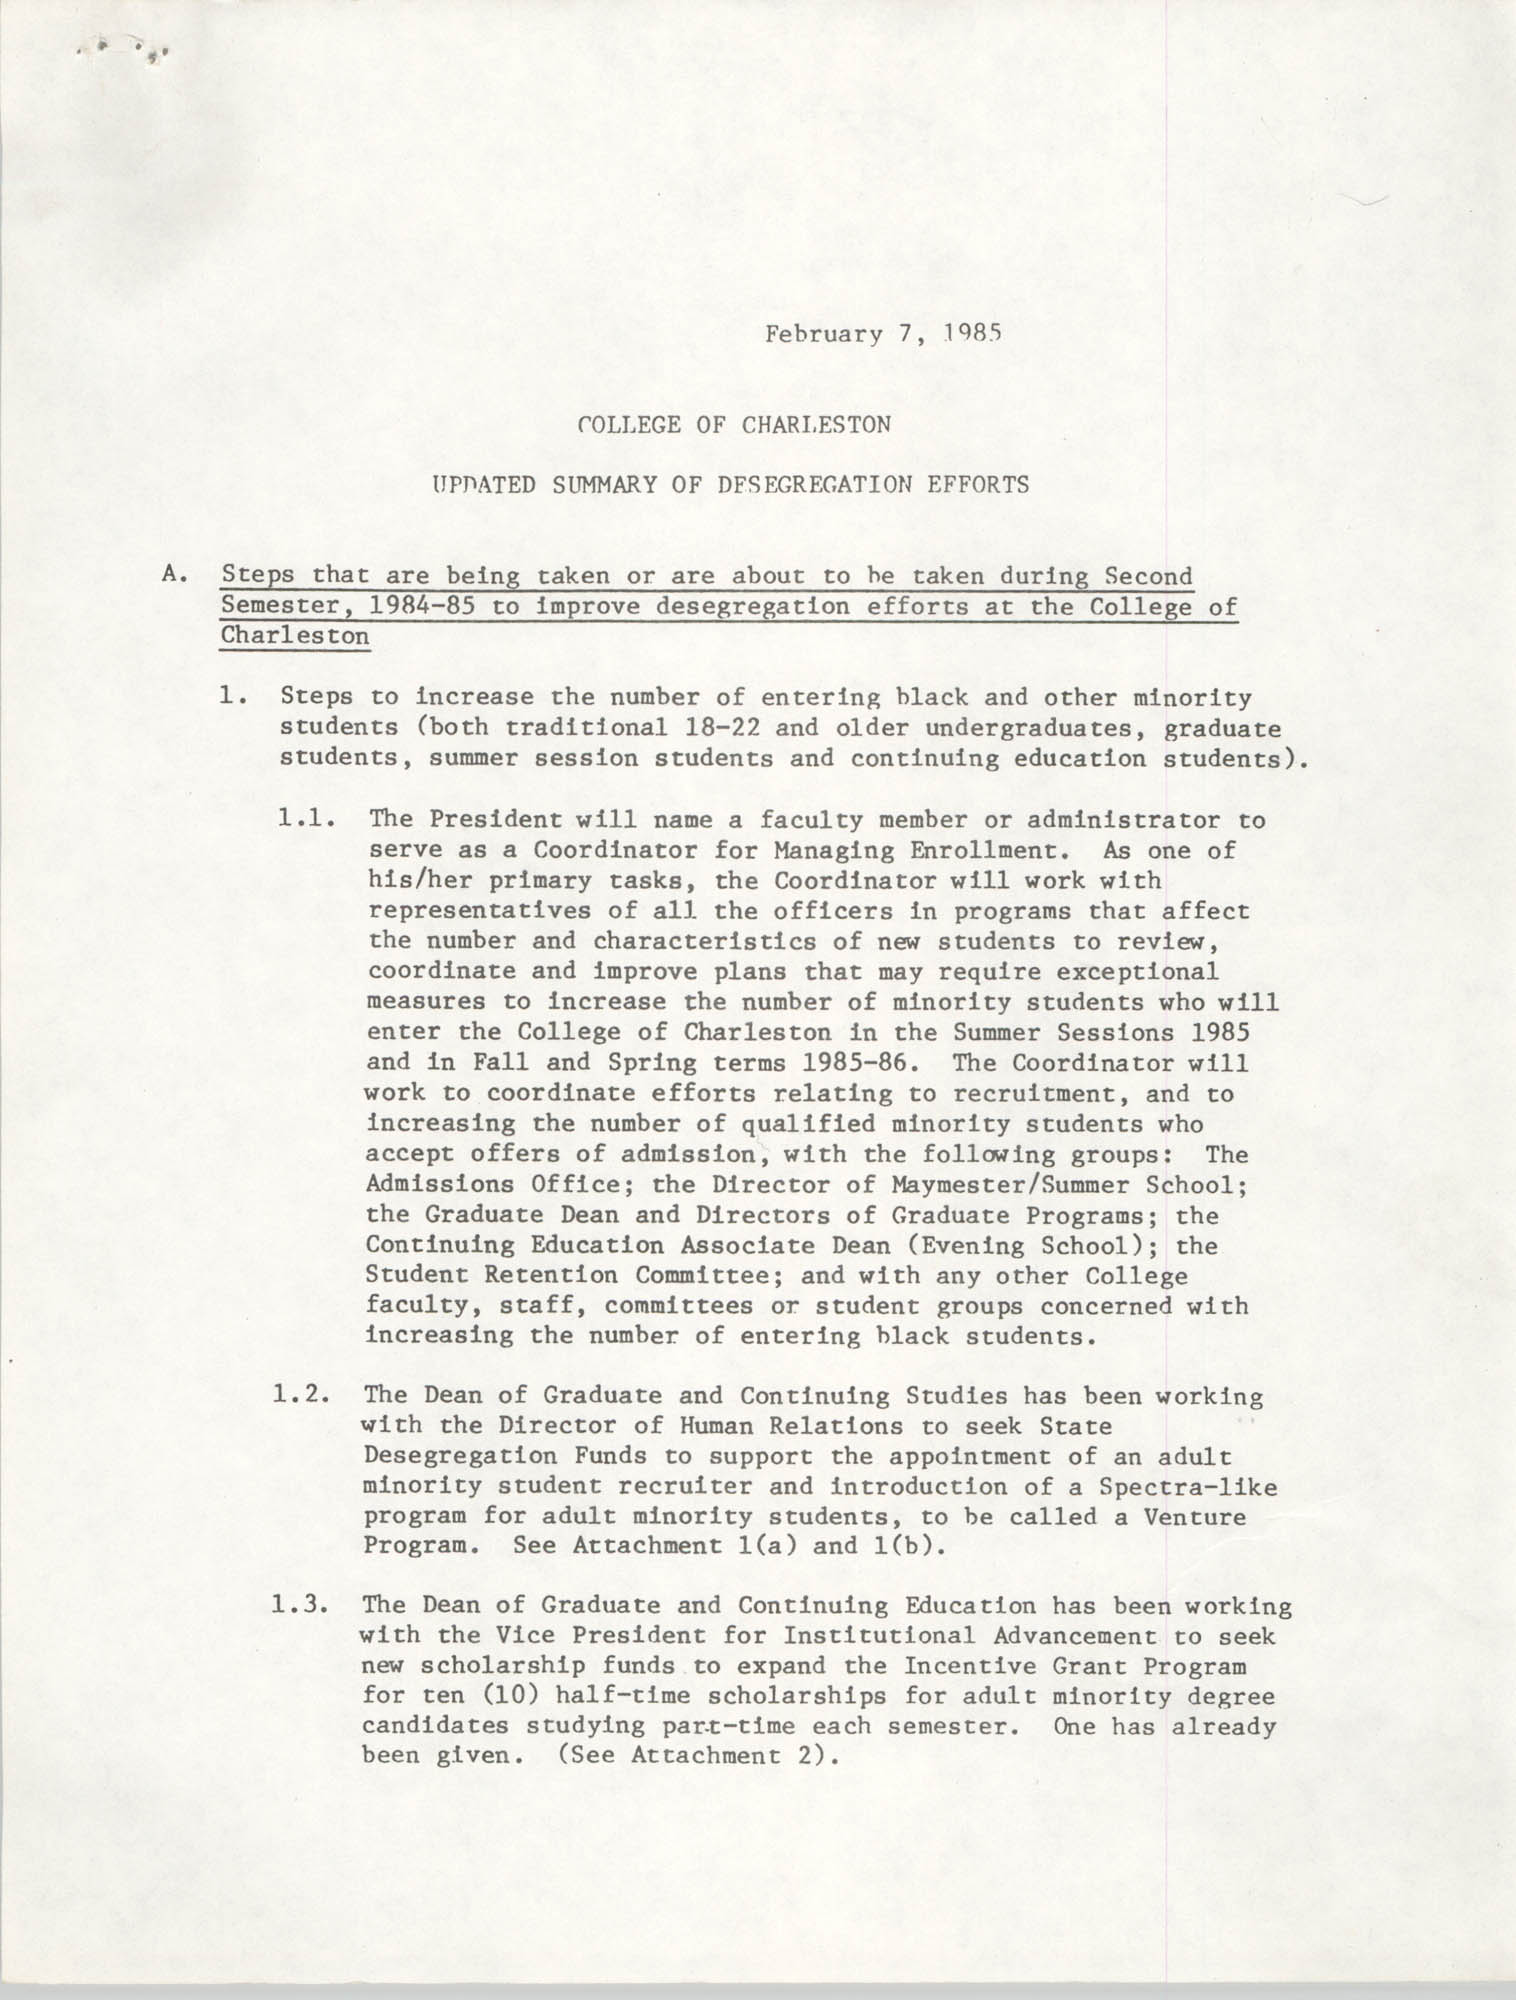 College of Charleston, Updated Summary of Desegregation Efforts, Page 1